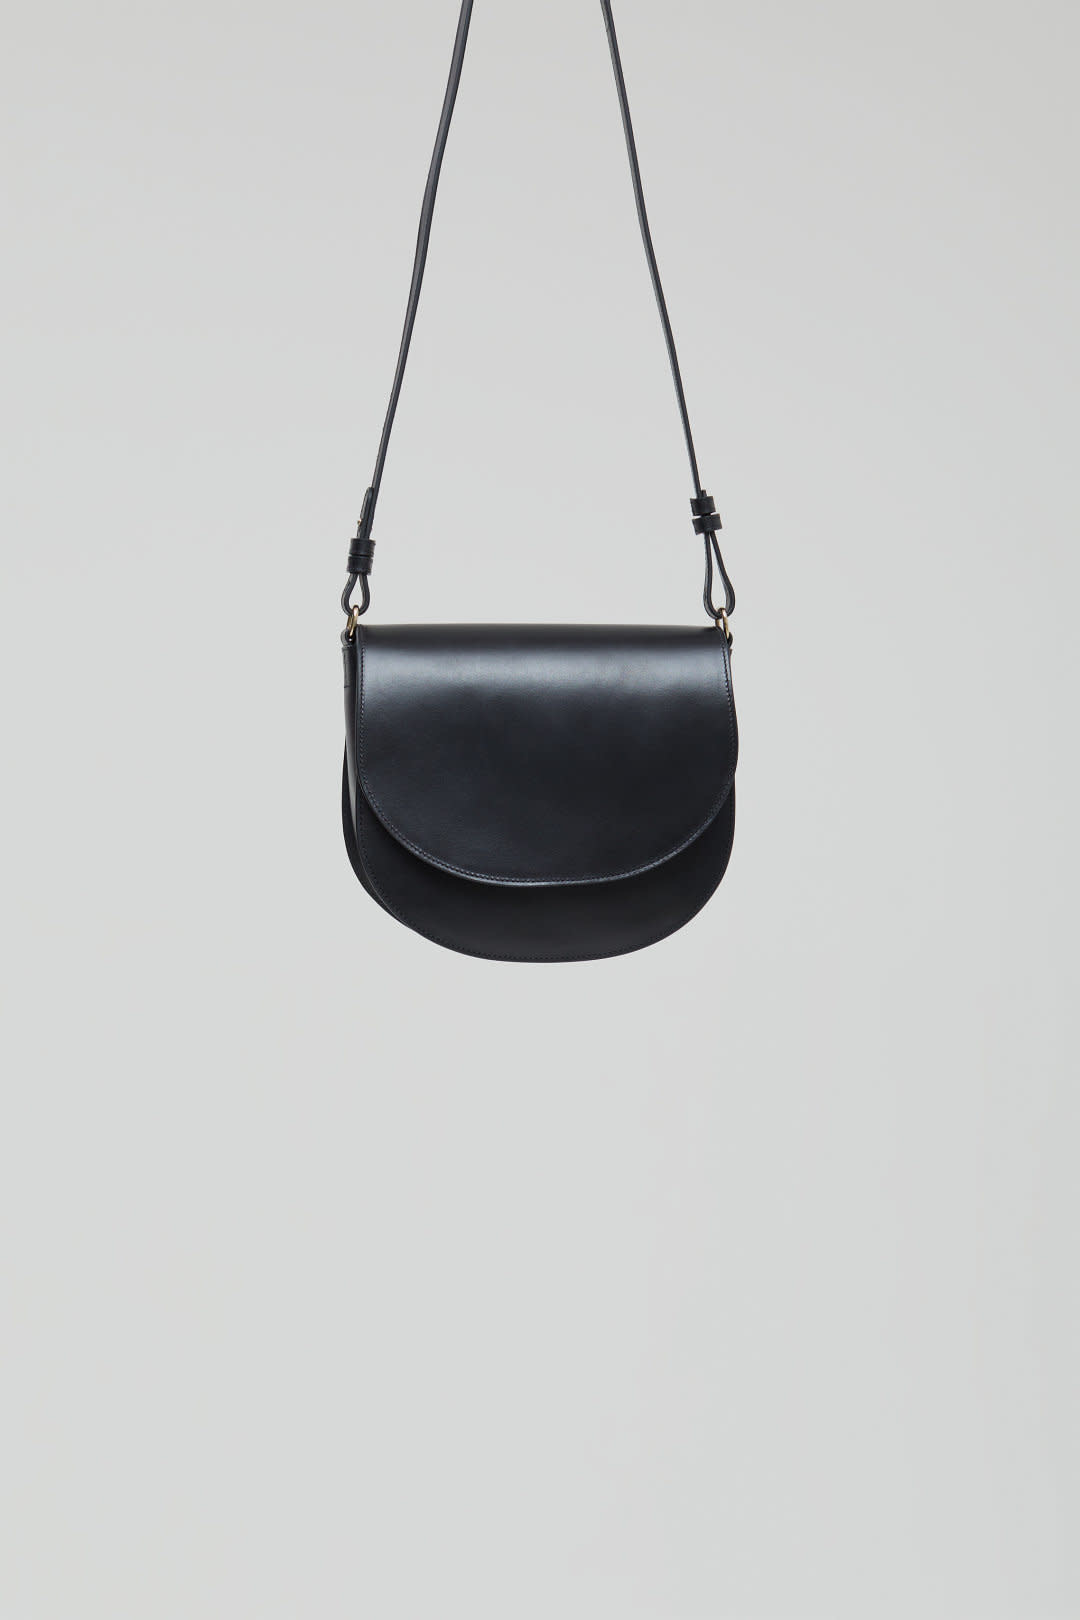 Ally M bag Black leather incl strap-4